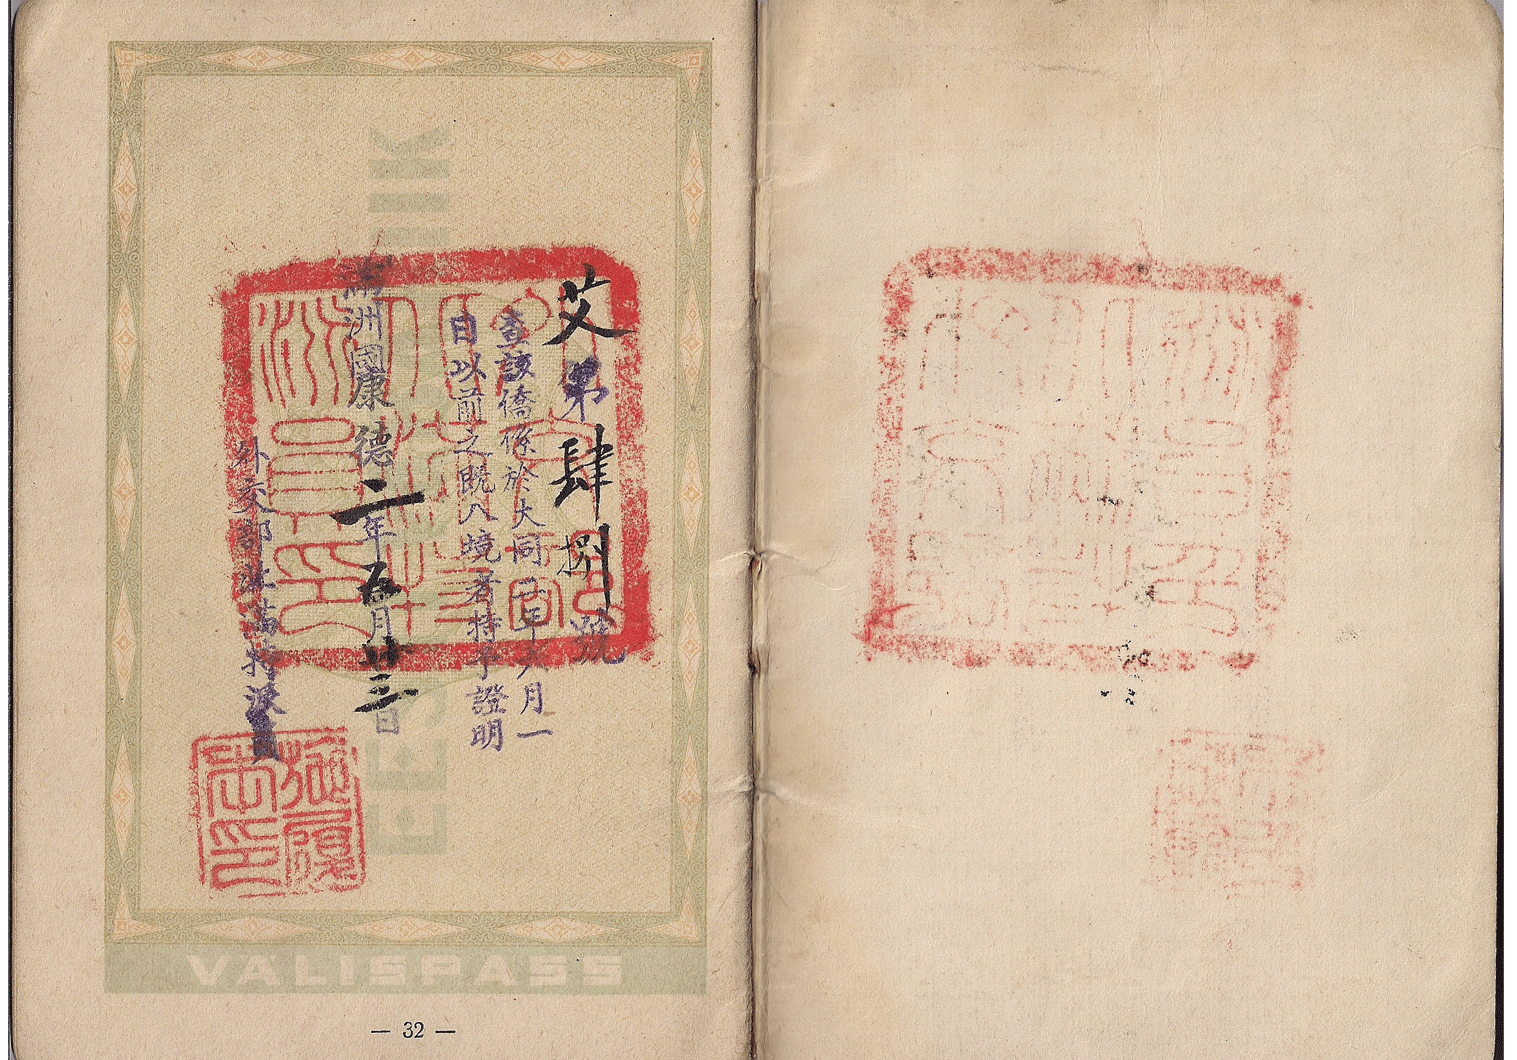 Estonian passport used in Manchuria